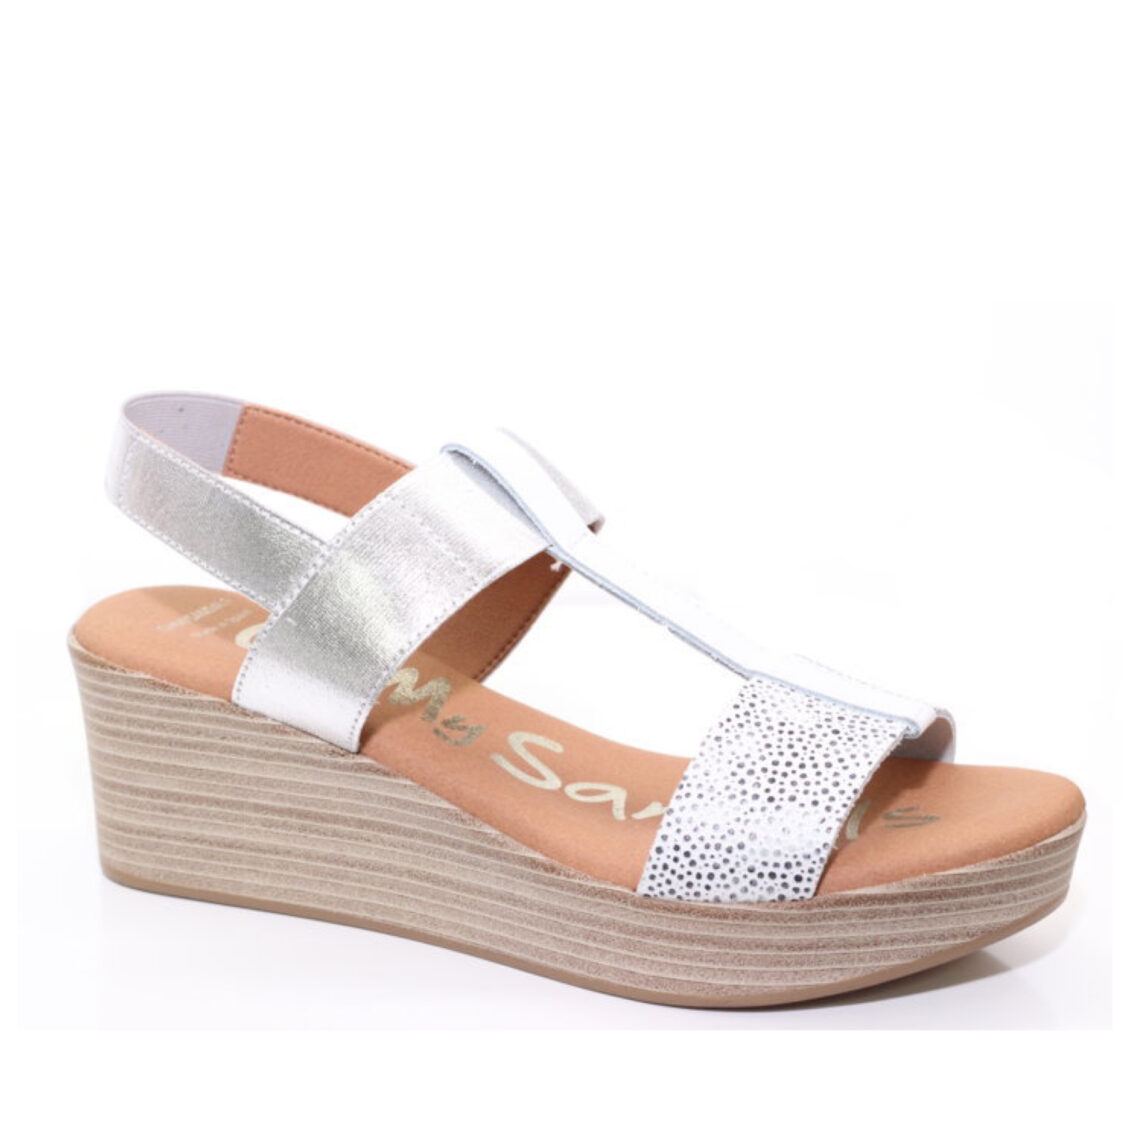 OH MY SANDALS Wedge 2 White